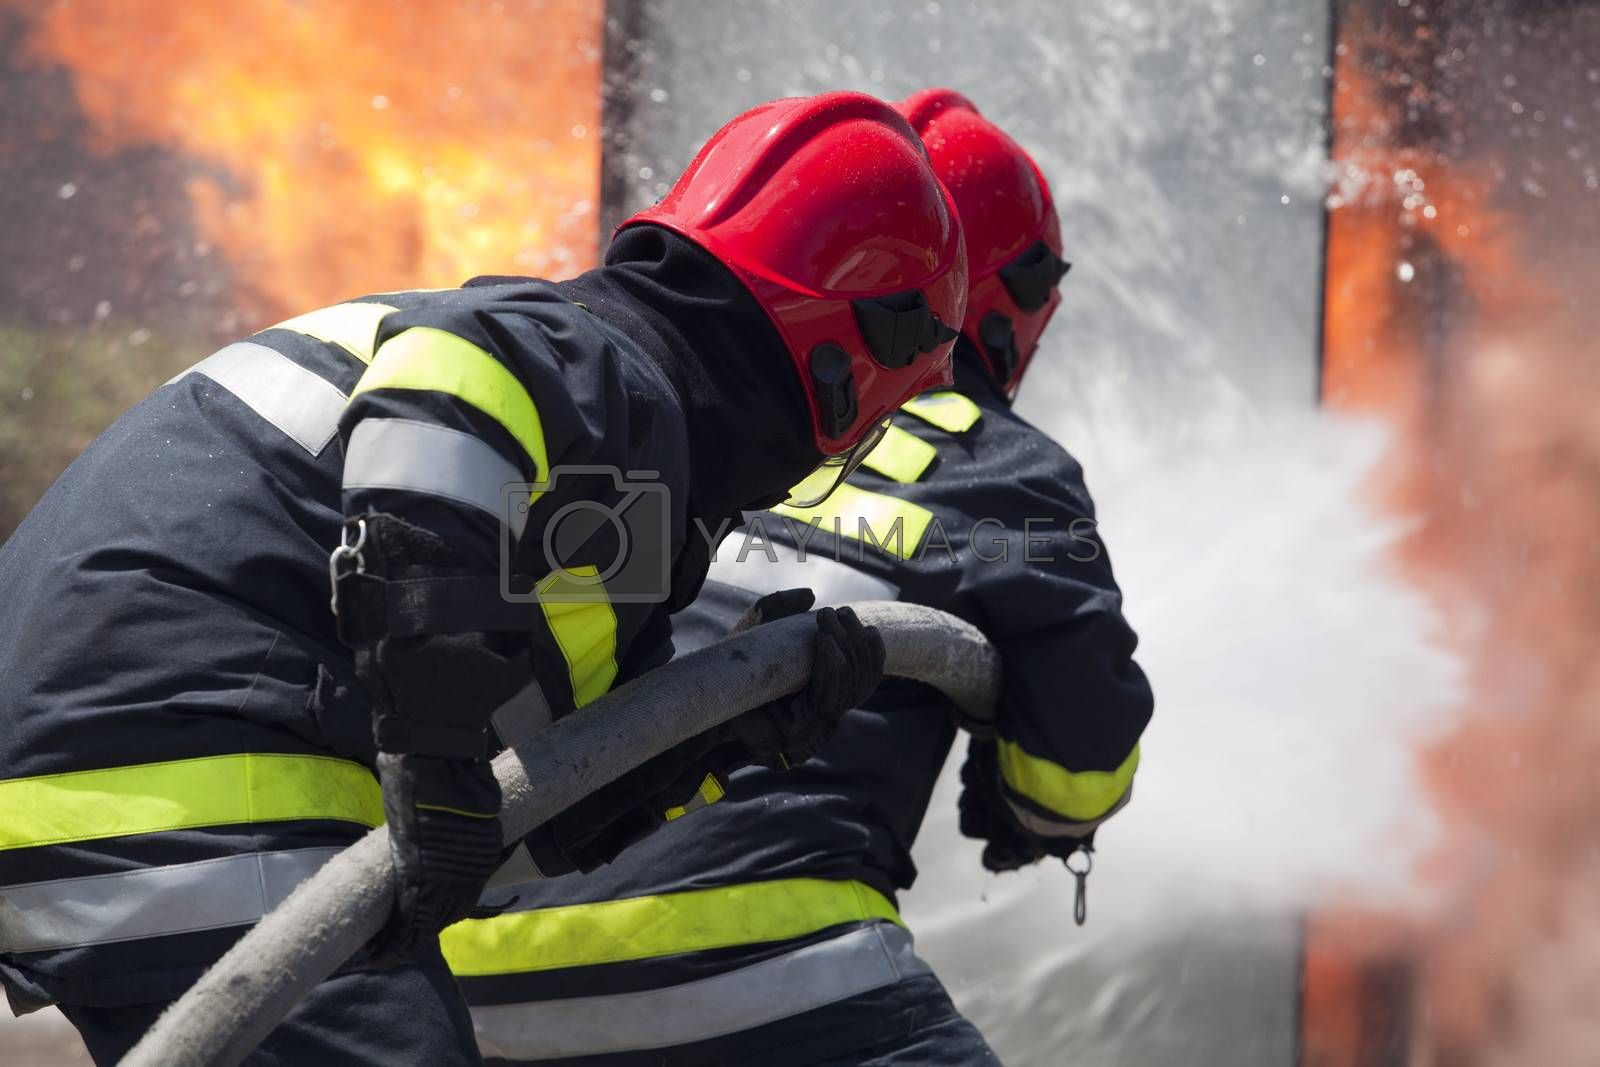 Royalty free image of Firefighters in action by wellphoto